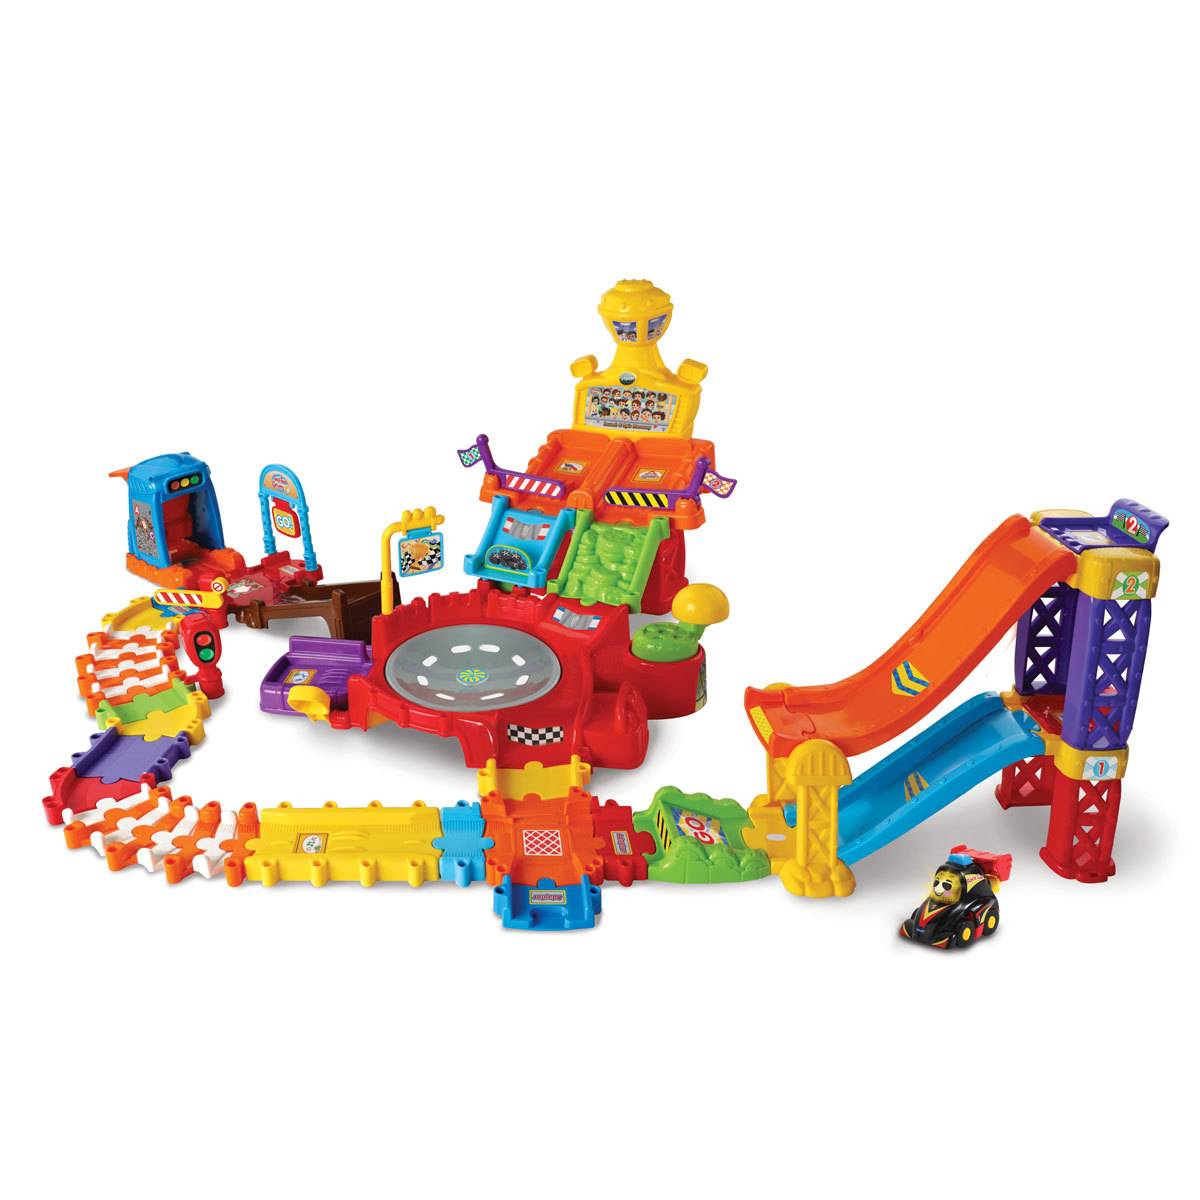 Vtech Toot-Toot Drivers Super Racing Set from Early Learning Center